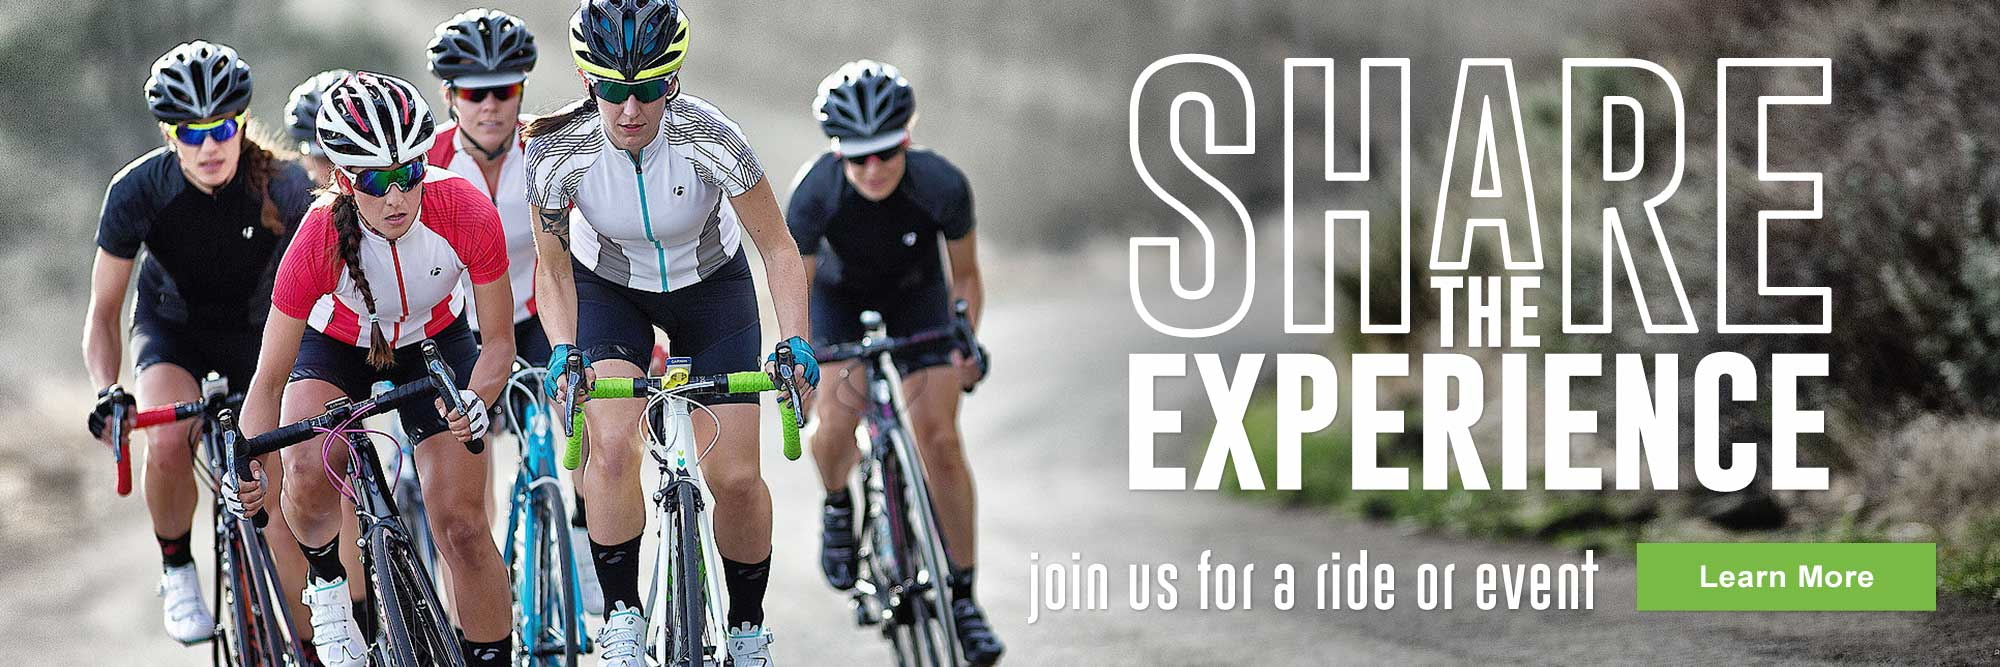 Share the experience: join us for a ride or event